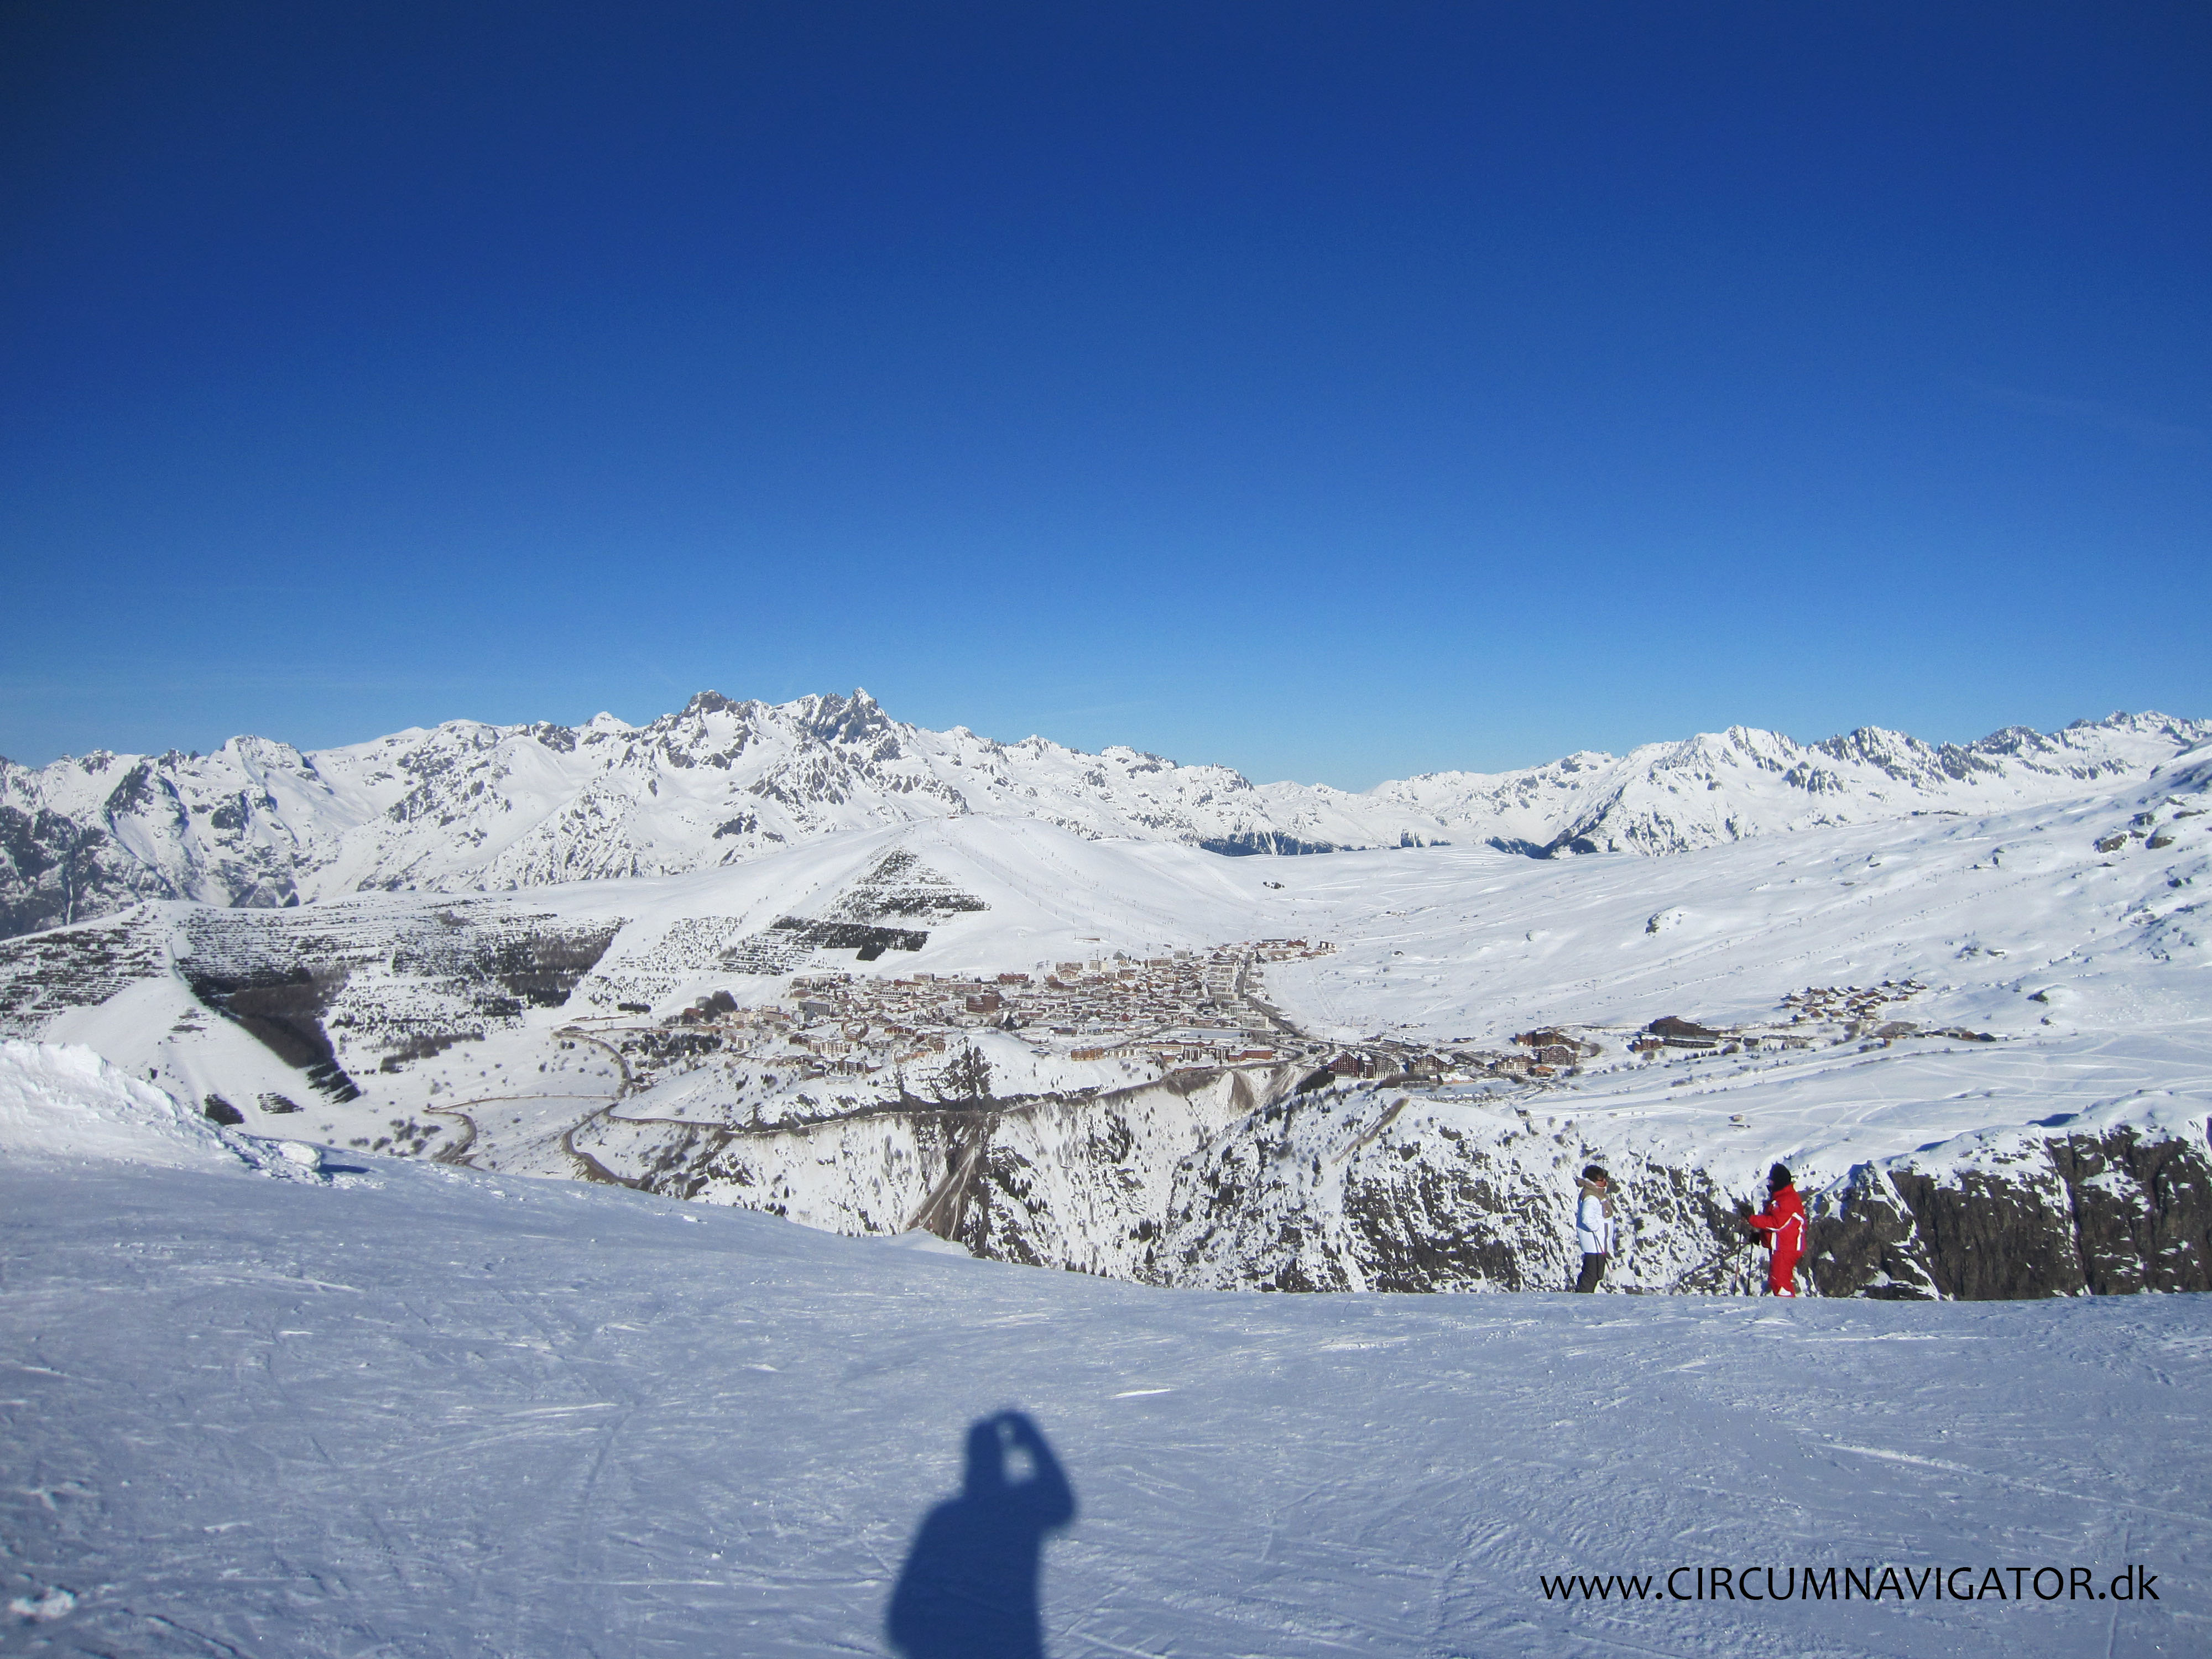 Alpe d'Huez – not only for Tour de France bike riders, also for down hill skiers